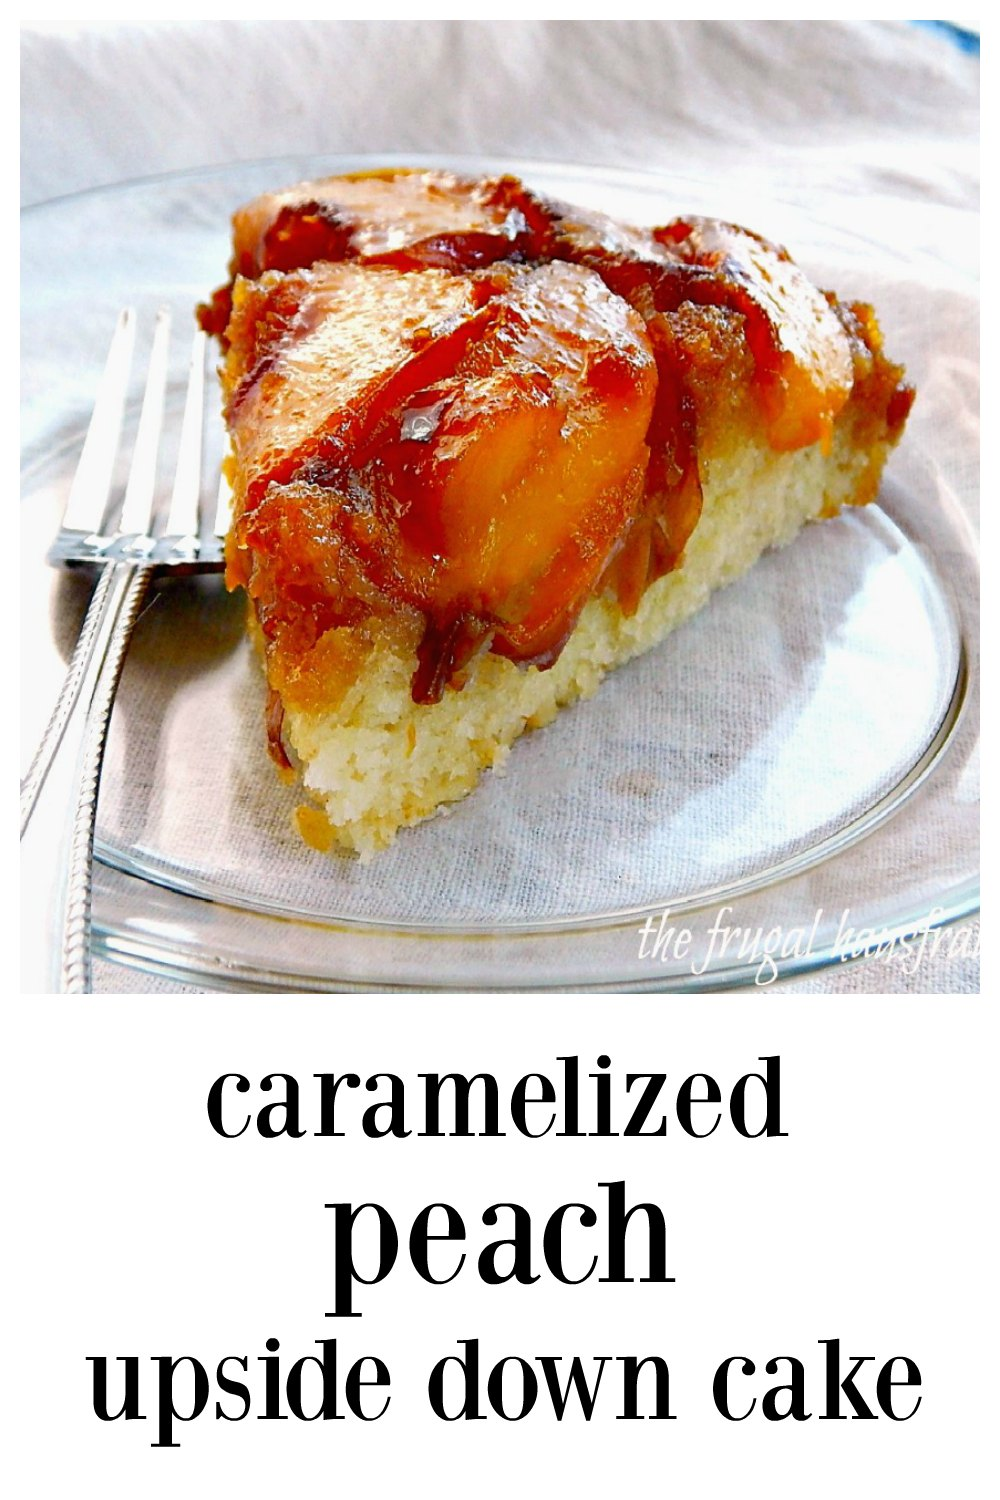 Peach Upside Down Cake - Impossibly good, caramelly deliciousness; This cake is like the taste of summer to the nth degree! #CaramelPeachUpsideDownCake #PeachUpsideDownCake #PeachCake #Peaches #PeachRecipe